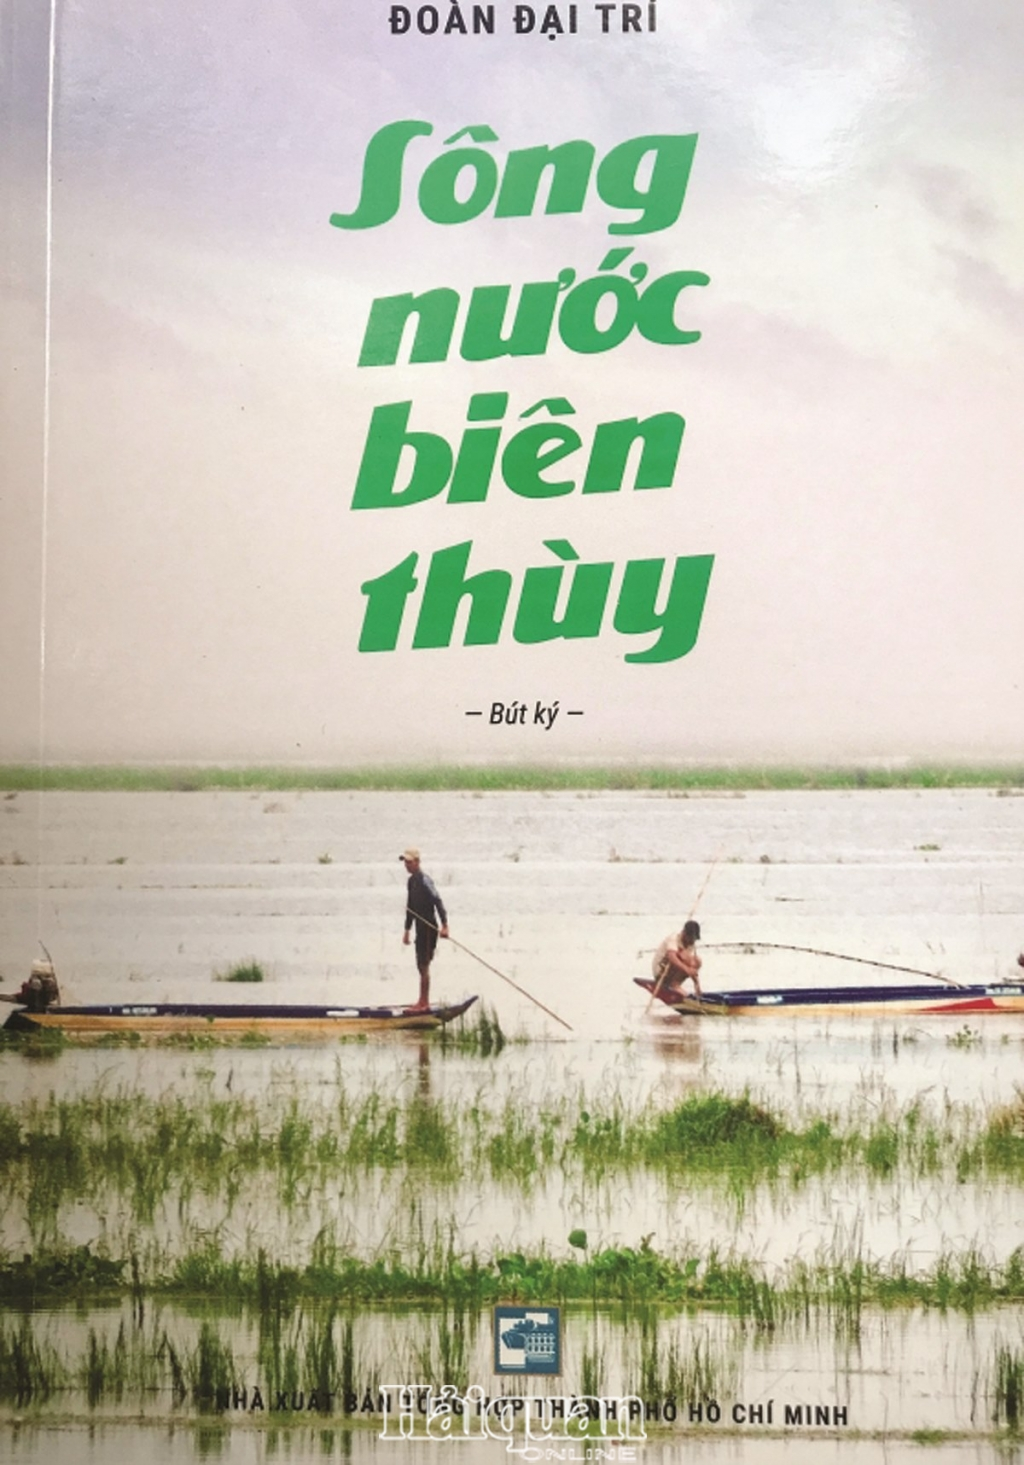 mien man song nuoc bien thuy